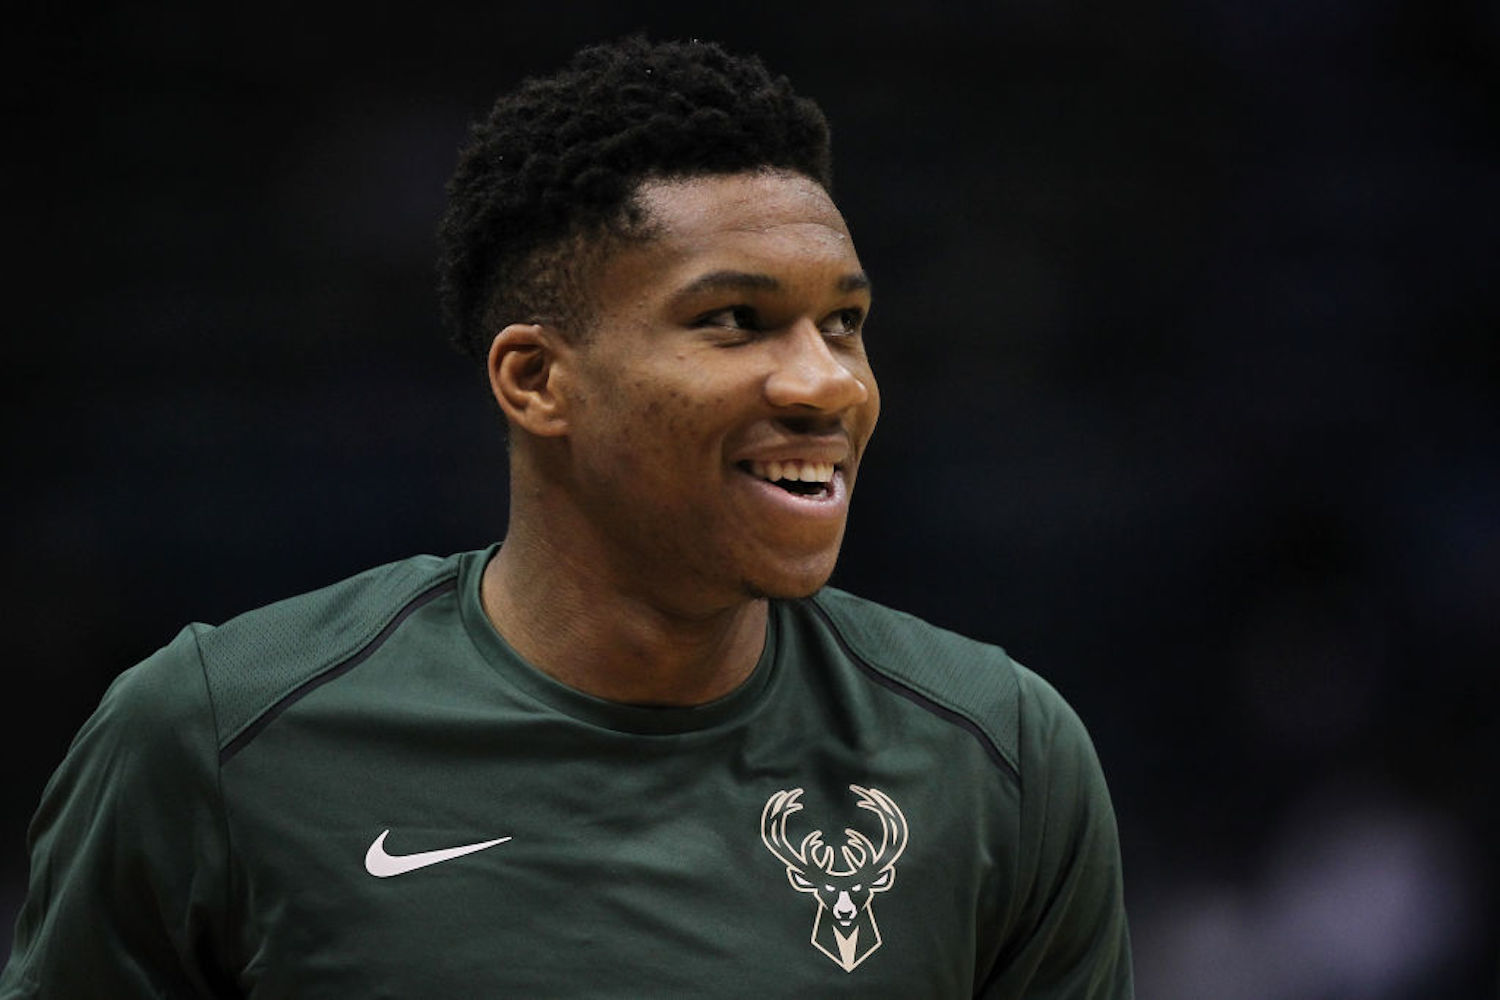 The Milwaukee Bucks Gave Giannis Antetokounmpo a Hint About His Future With a Hilarious Birthday Present